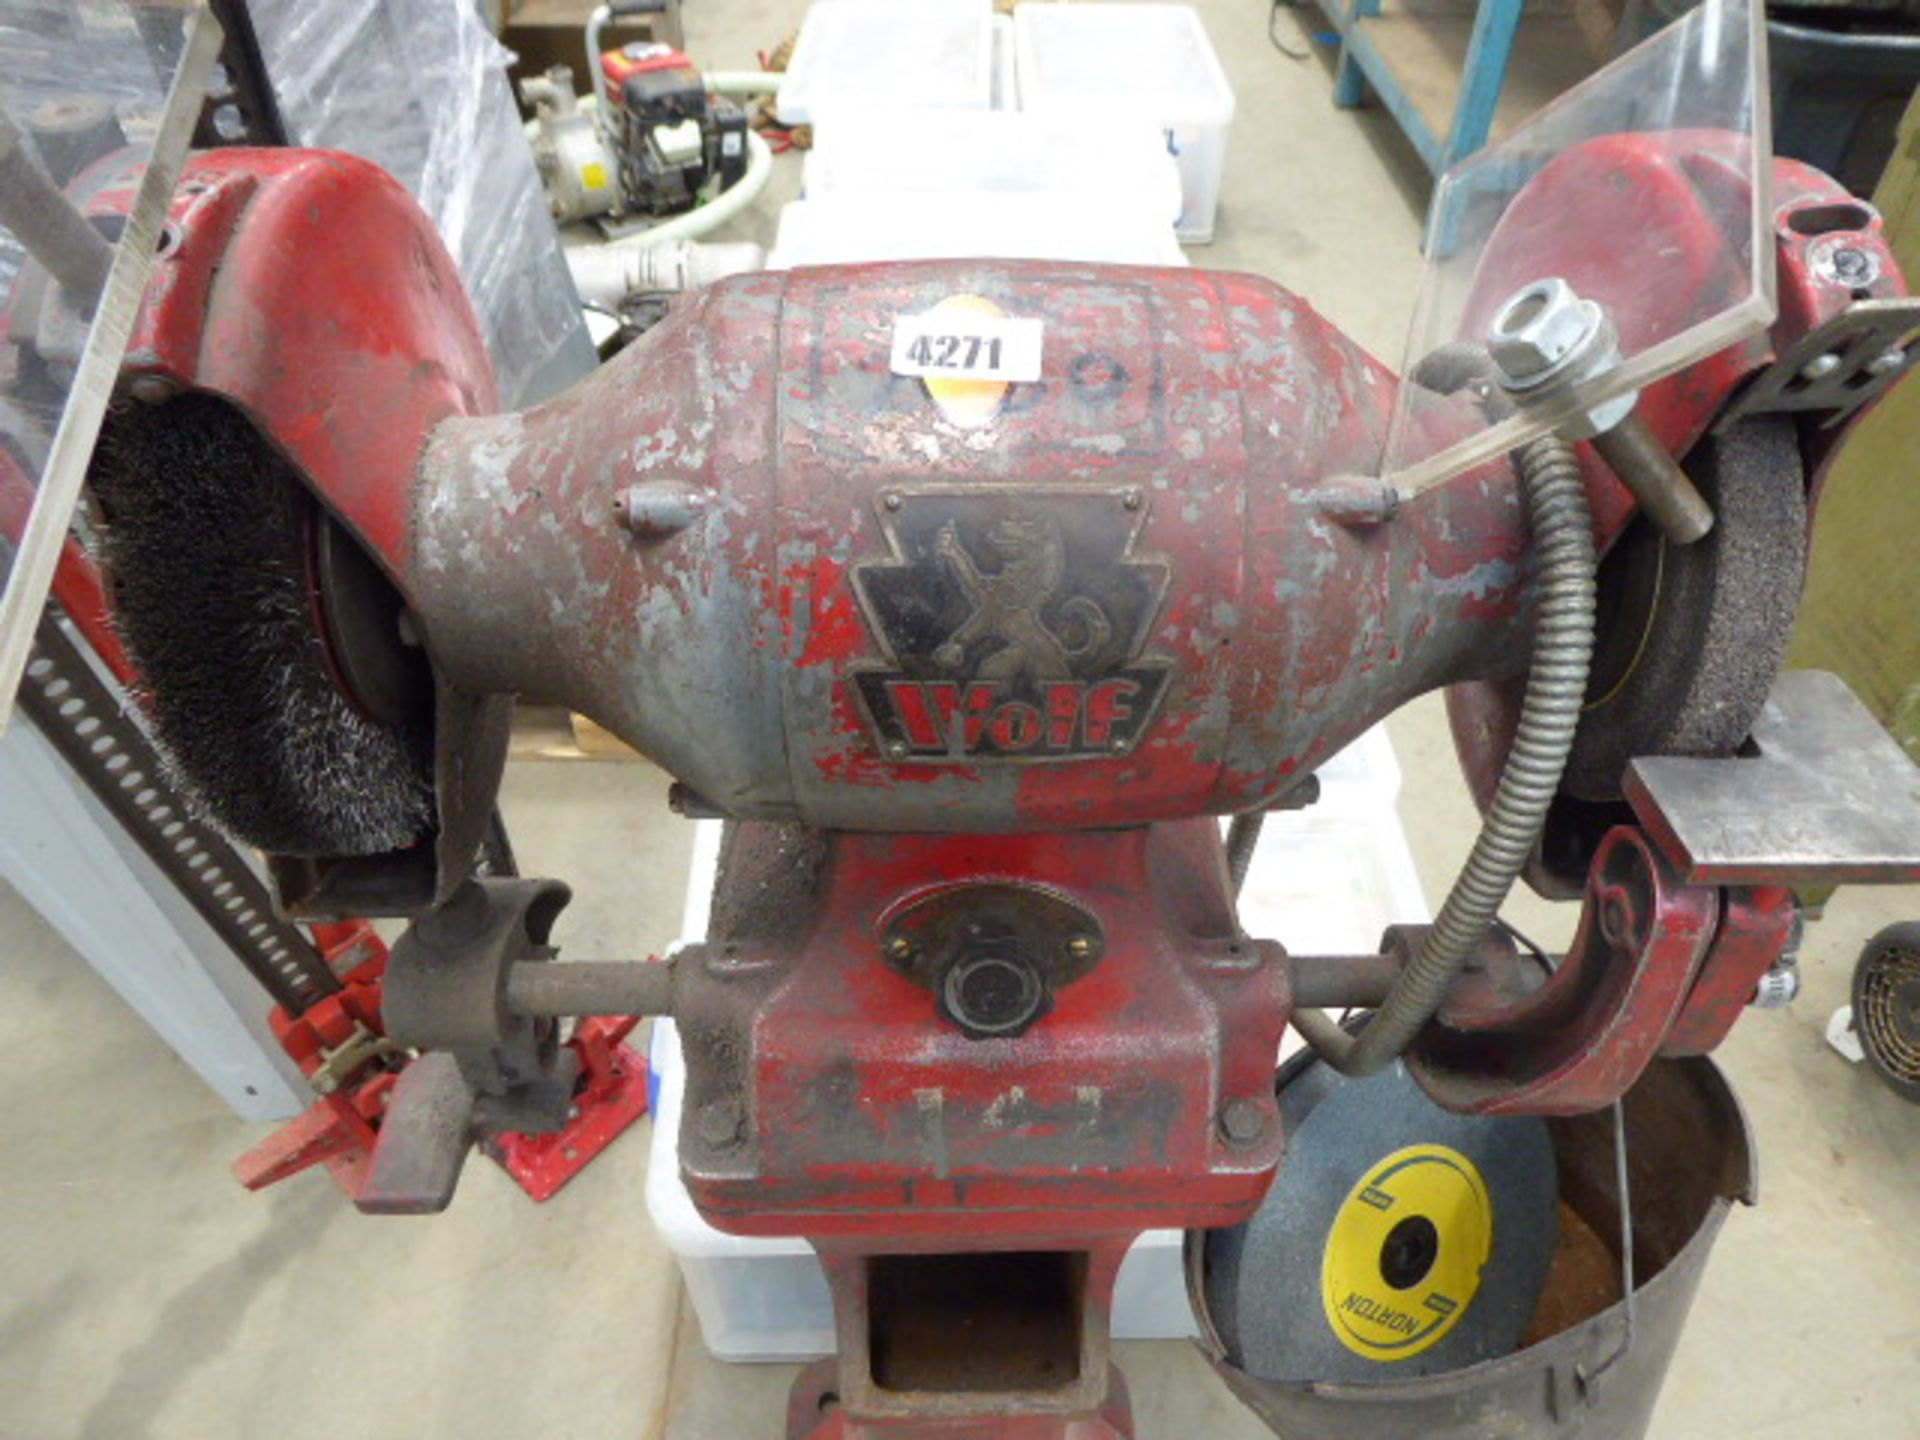 A Wolf bench grinder and wire brush on pedestal - Image 2 of 2